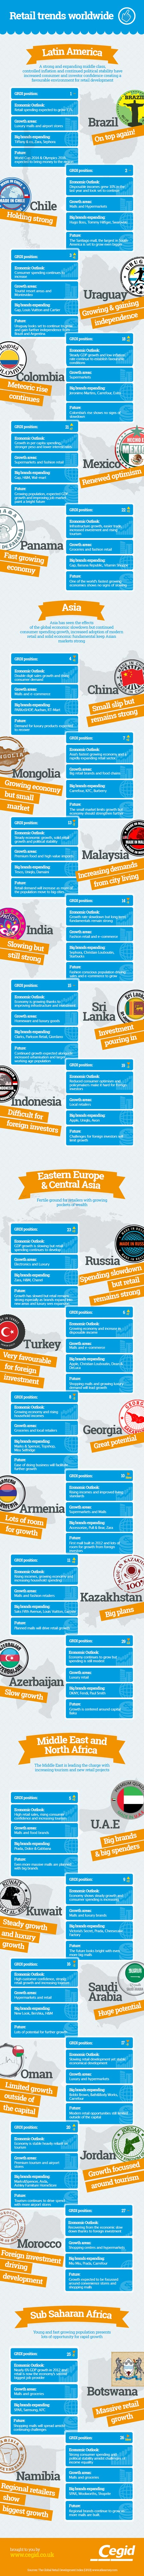 Global Retail Landscape-Infographic